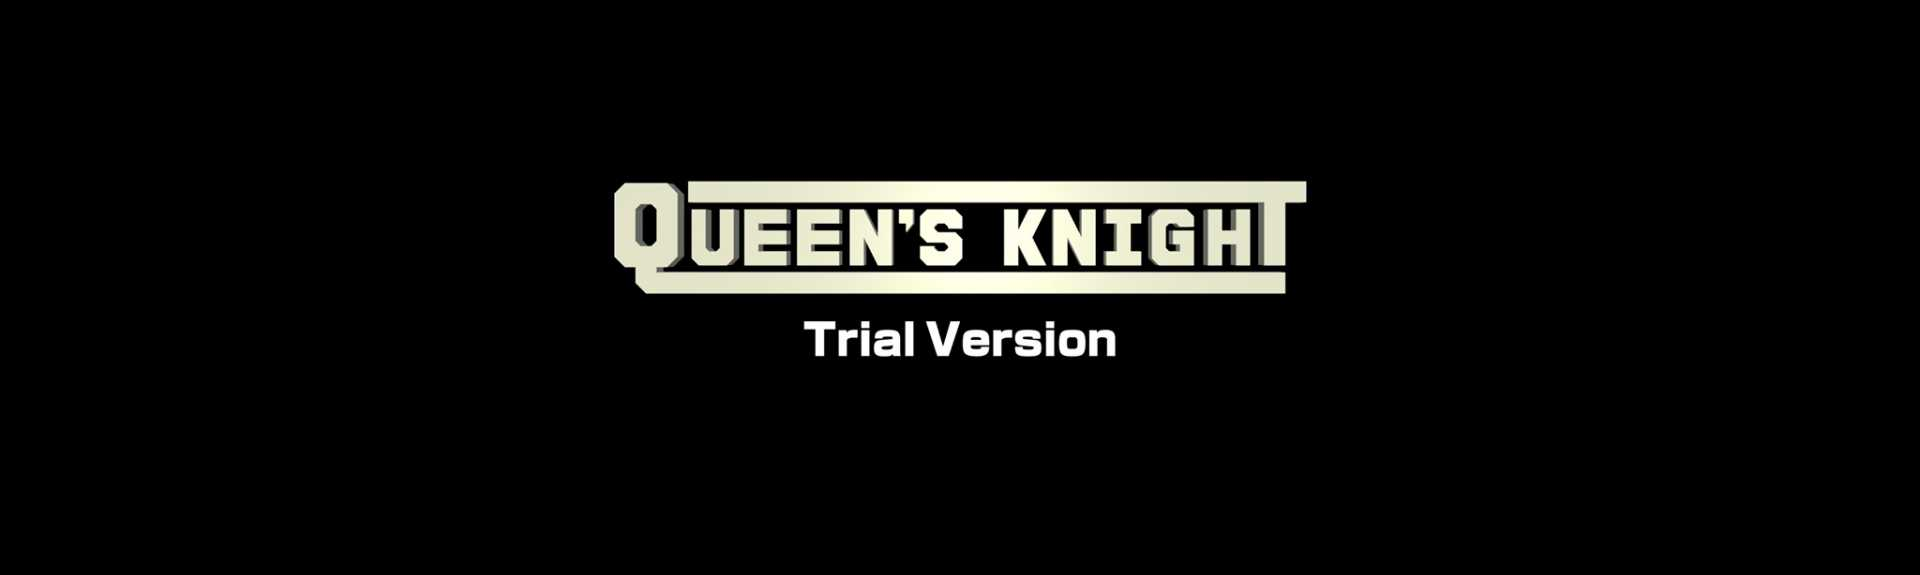 QUEEN'S KNIGHT TRIAL VERSION